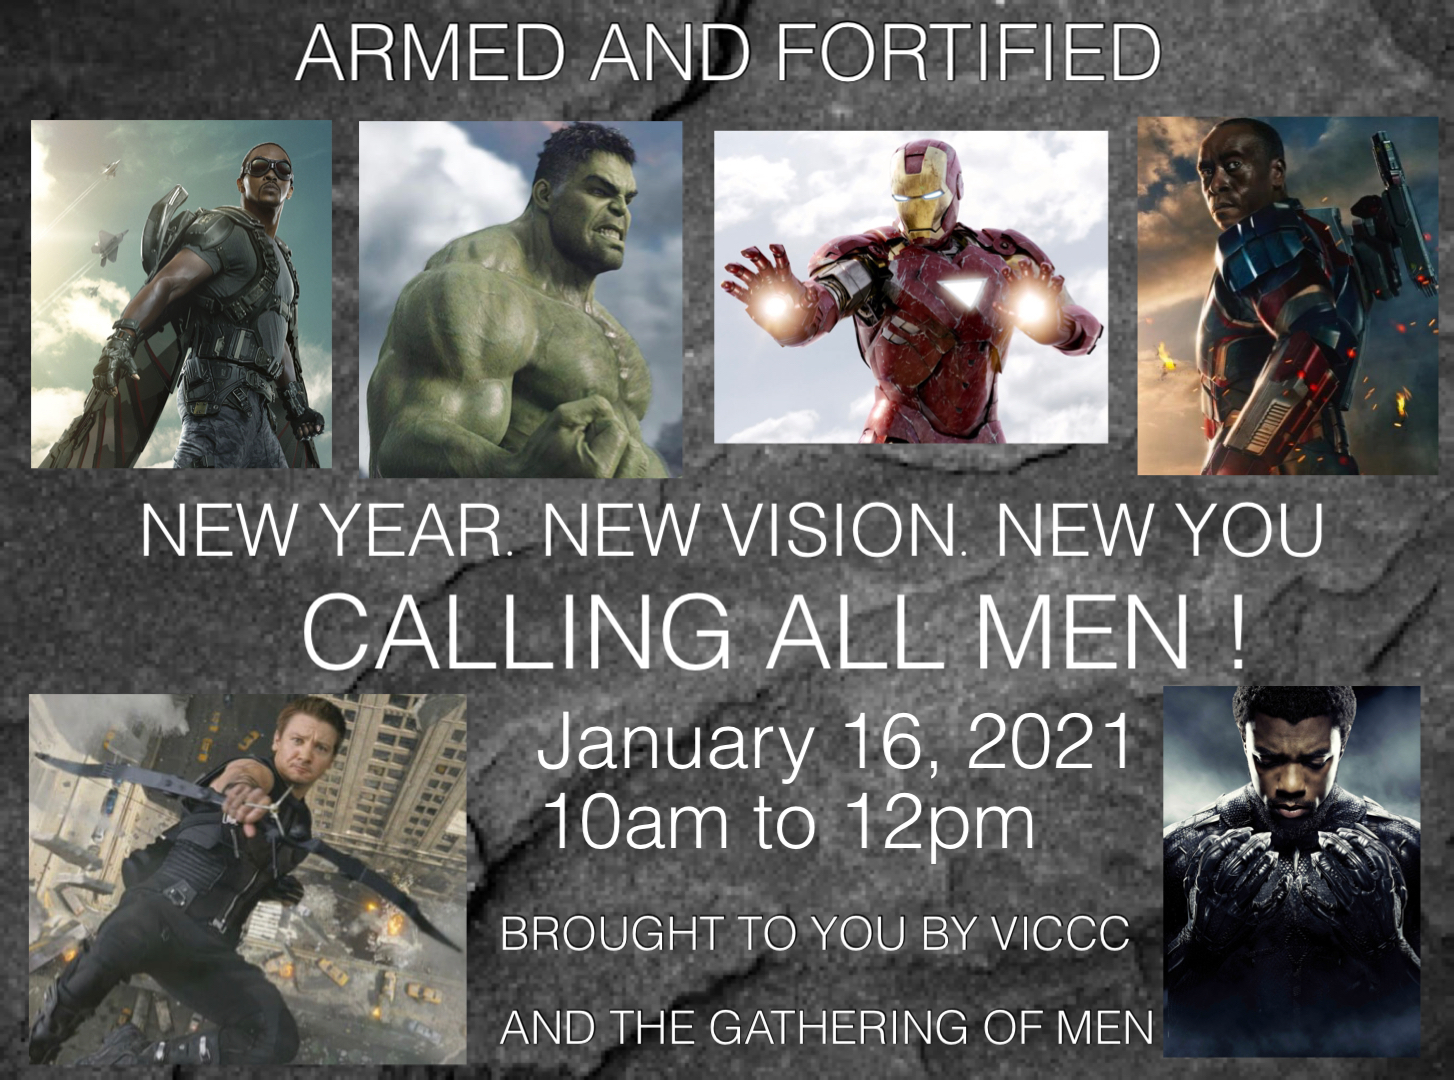 Men's Gathering ARMED AND FORTIFIED